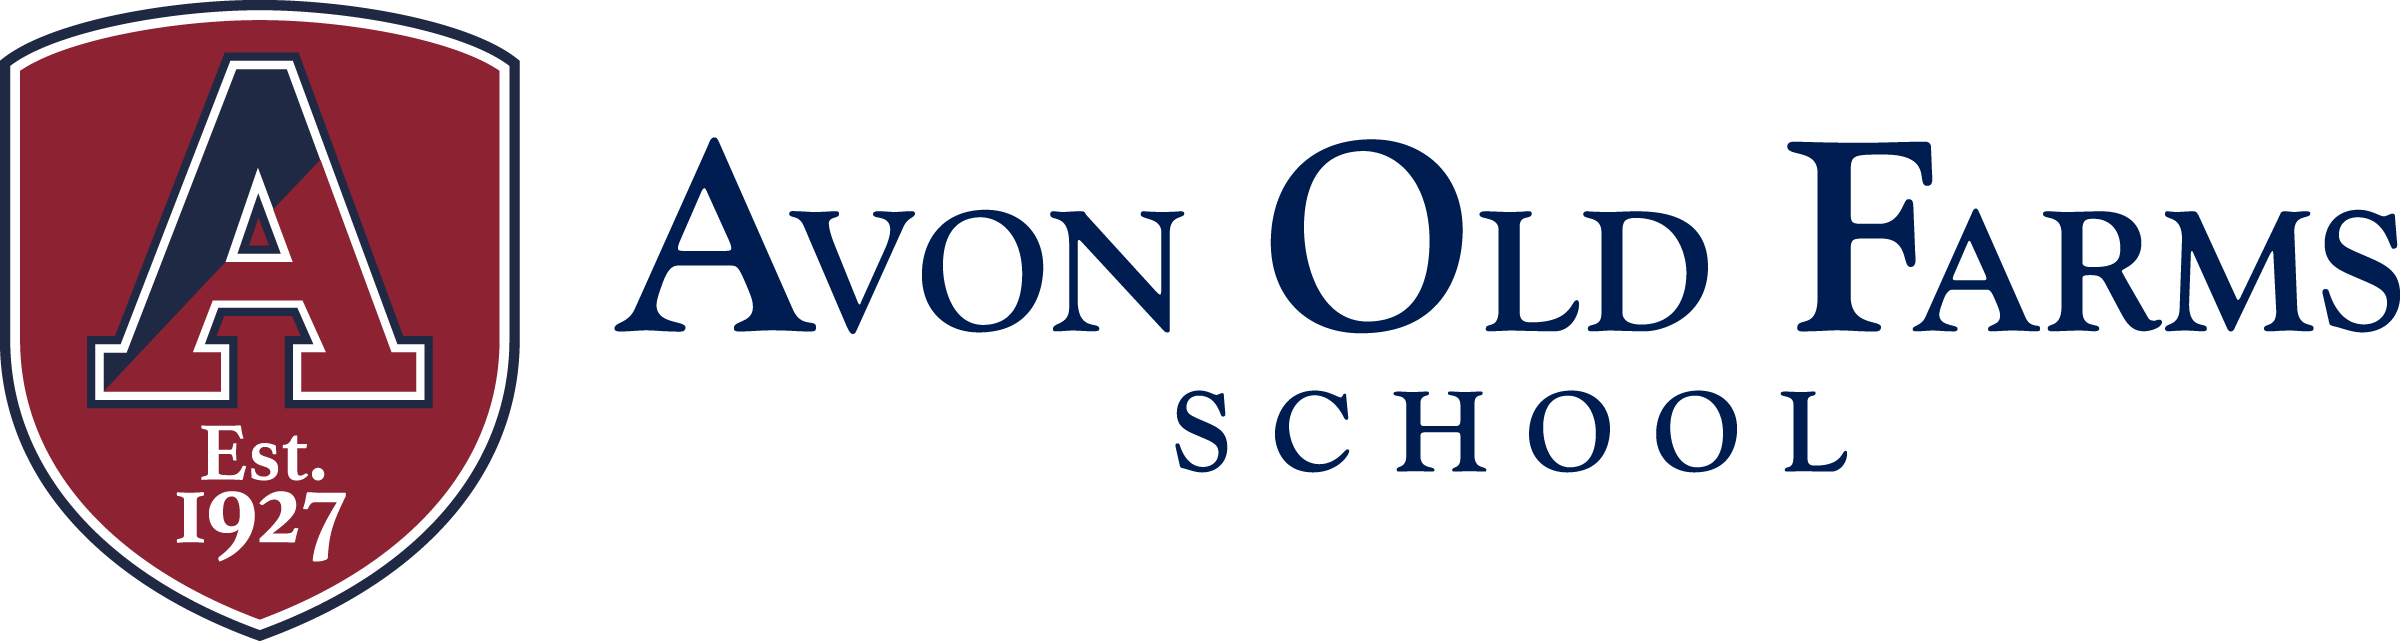 Avon Old Farms School